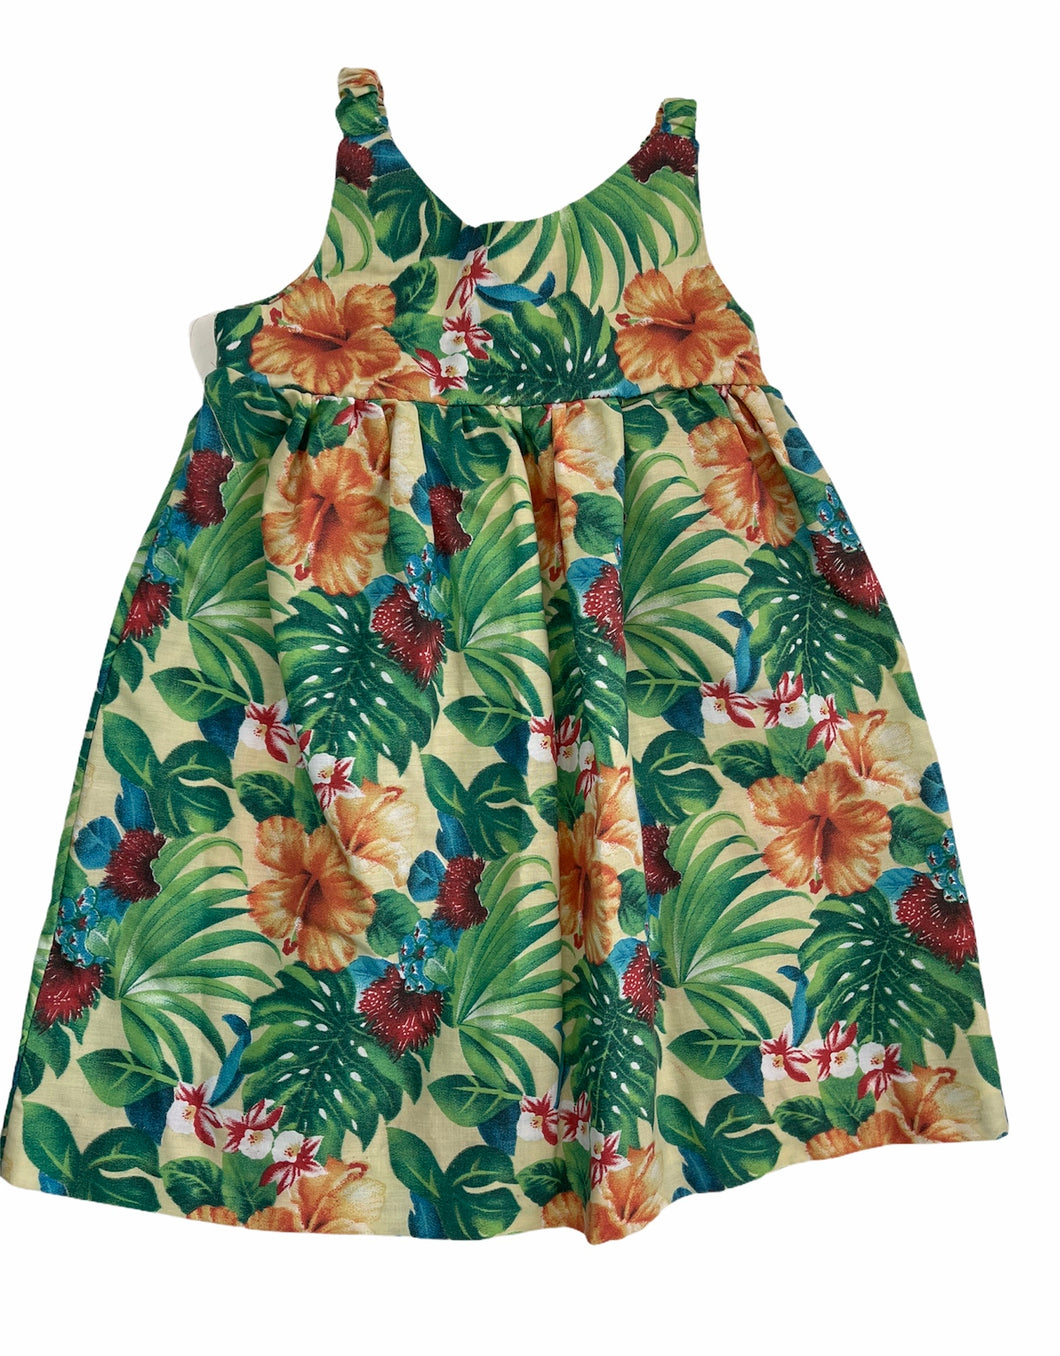 Tropical Handmade Dress